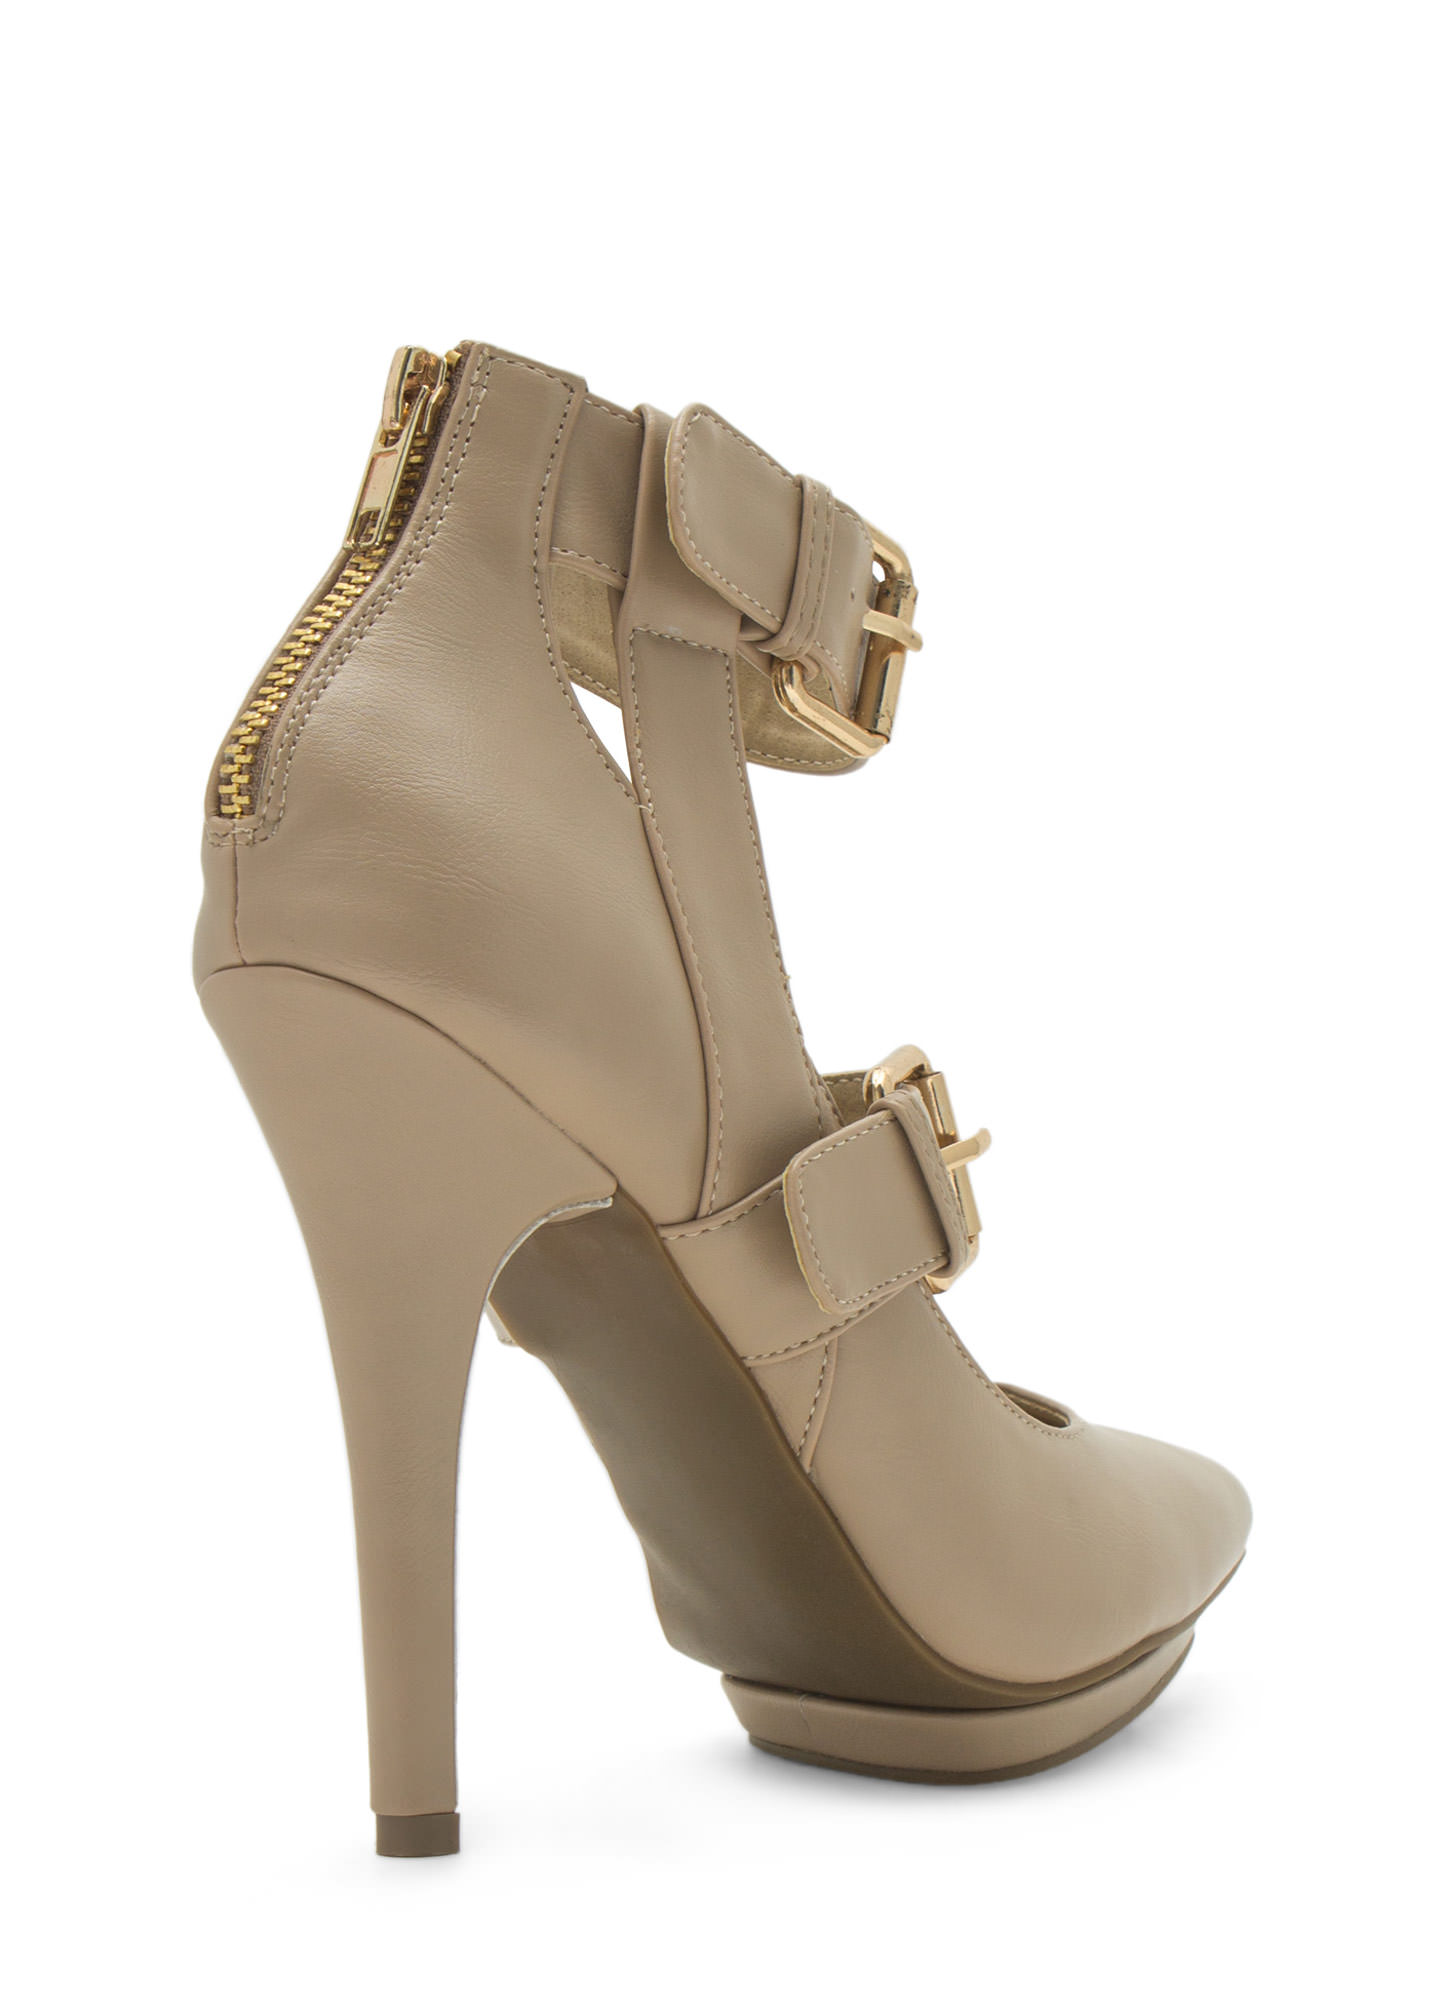 Double Trouble Strappy Heels NUDE